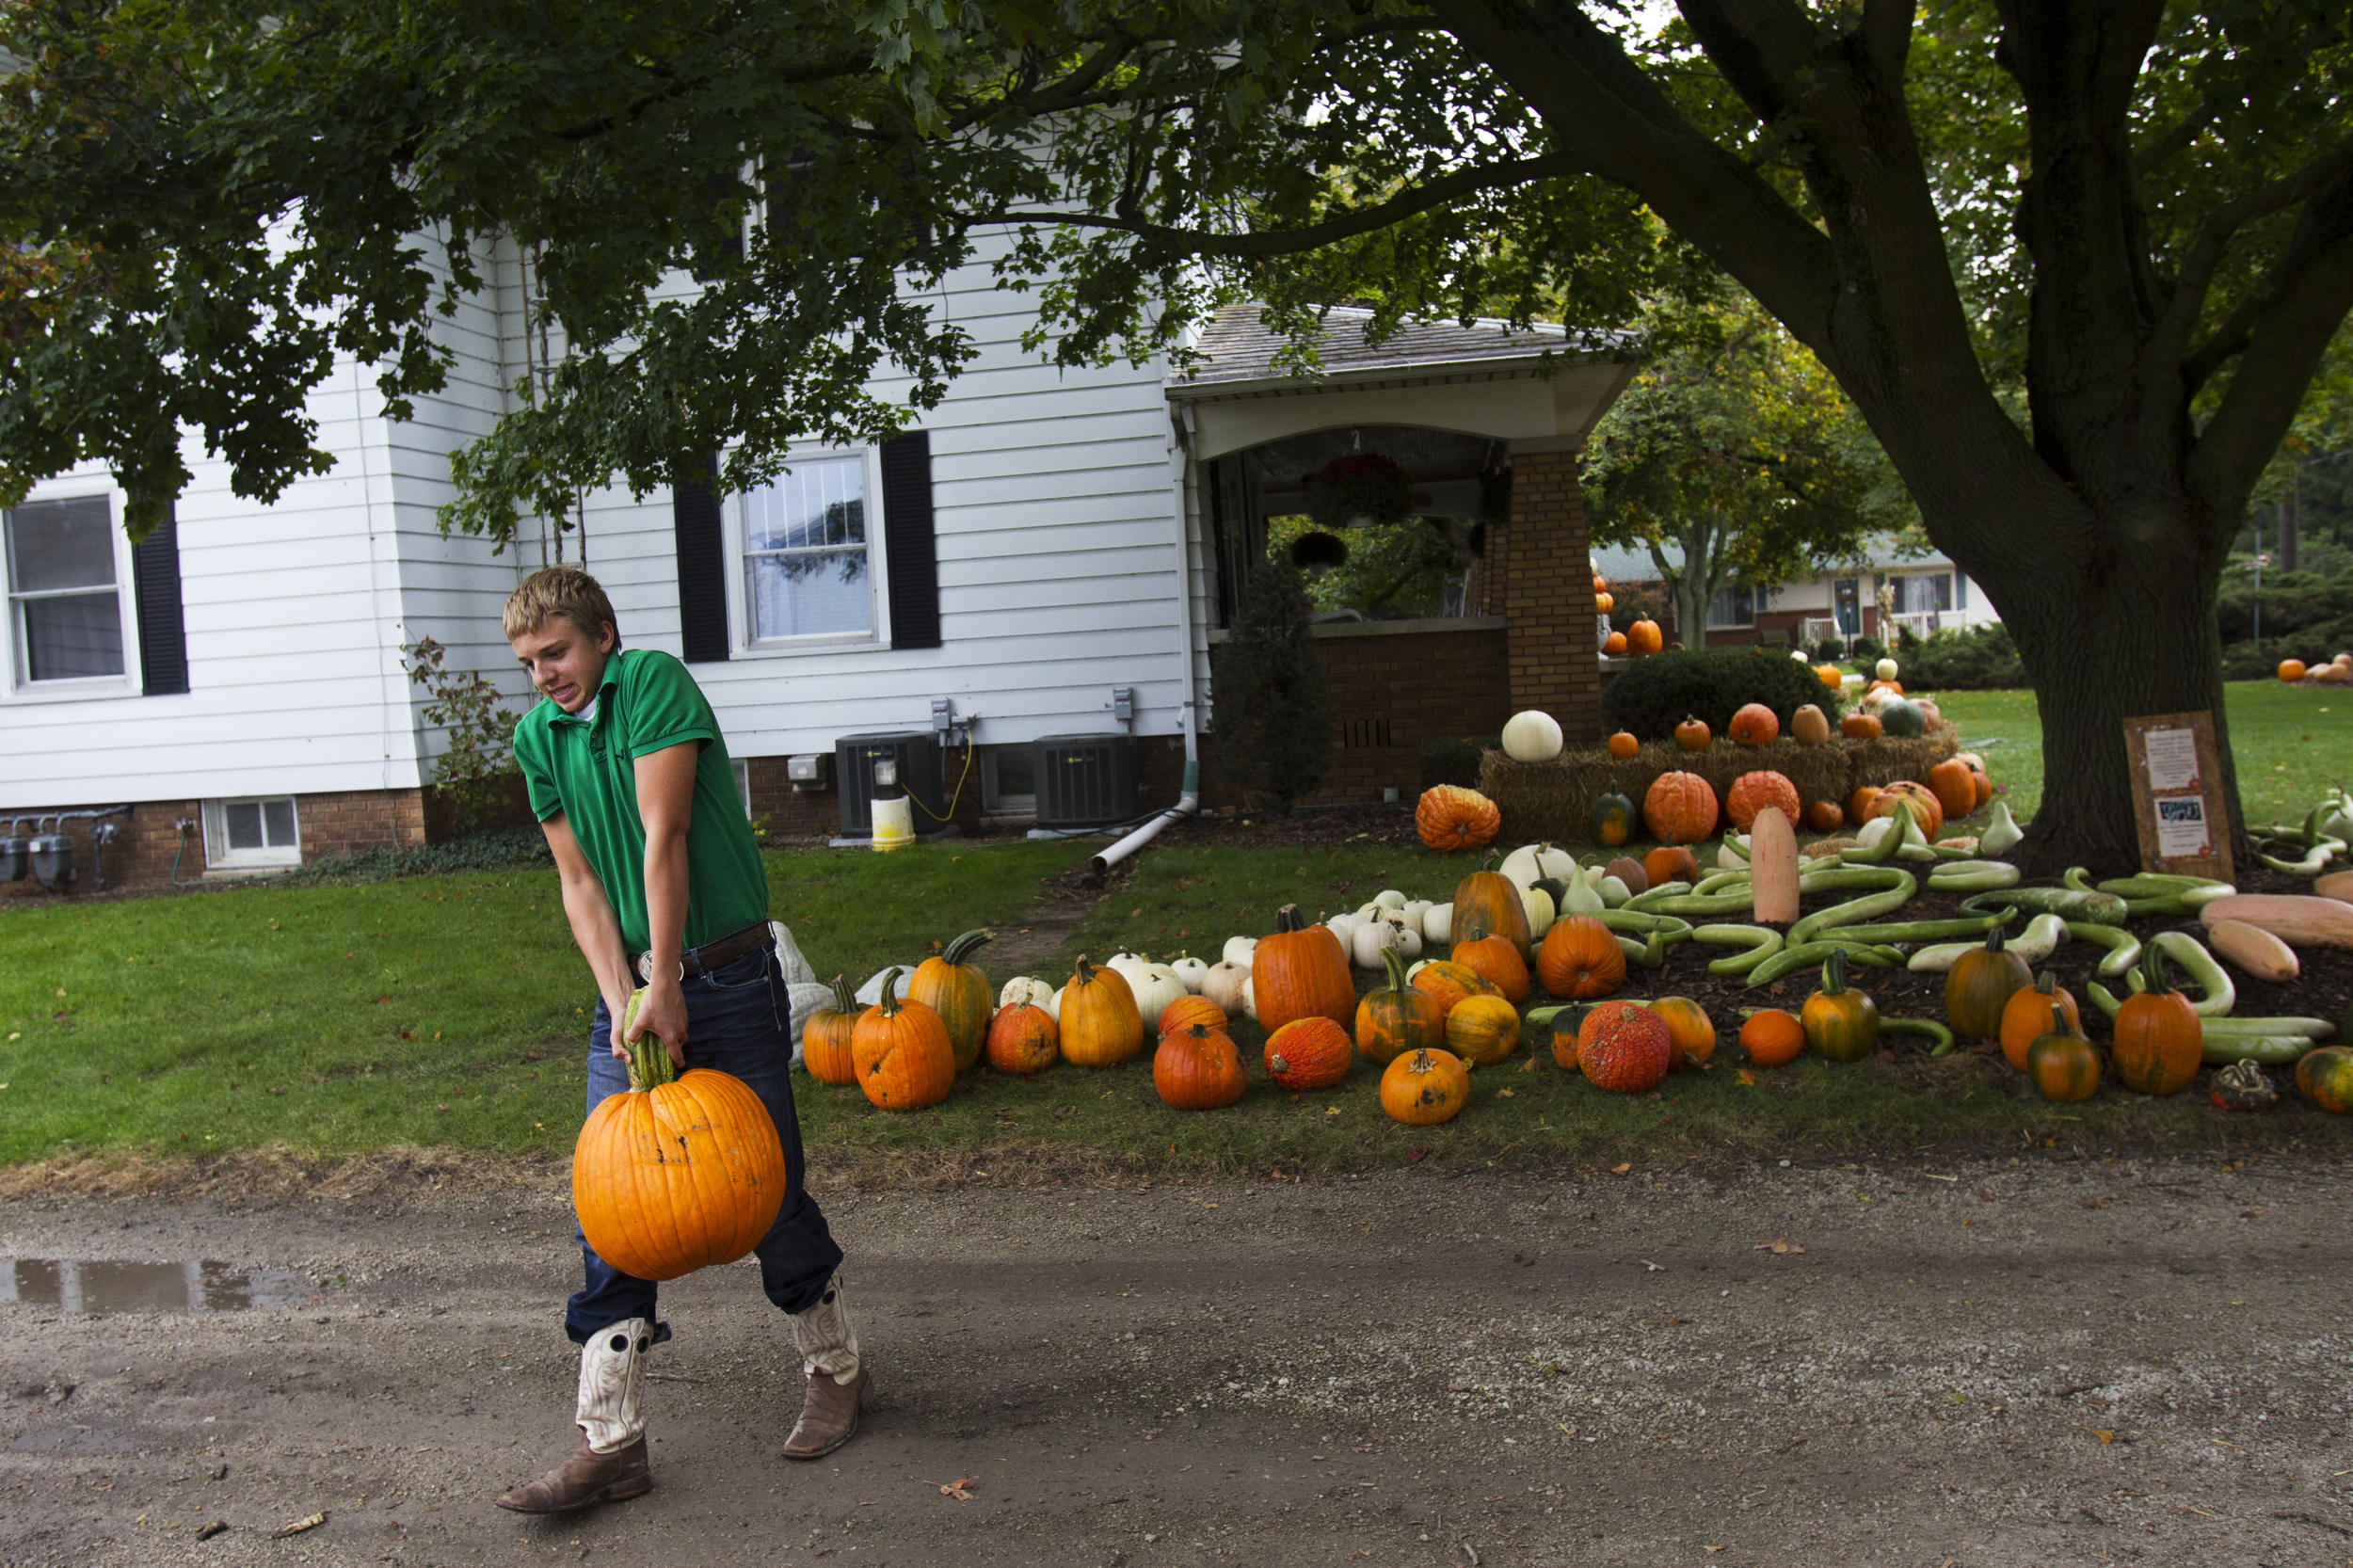 A local boy lugs a pumpkin back to his mother's truck from the Abke property just outside Pemberville. The Abke's get by on their family farm by holding day jobs and selling seasonal produce. Anyone who purchases their produce is on the honor system; they're asked to leave money in a box near the door.